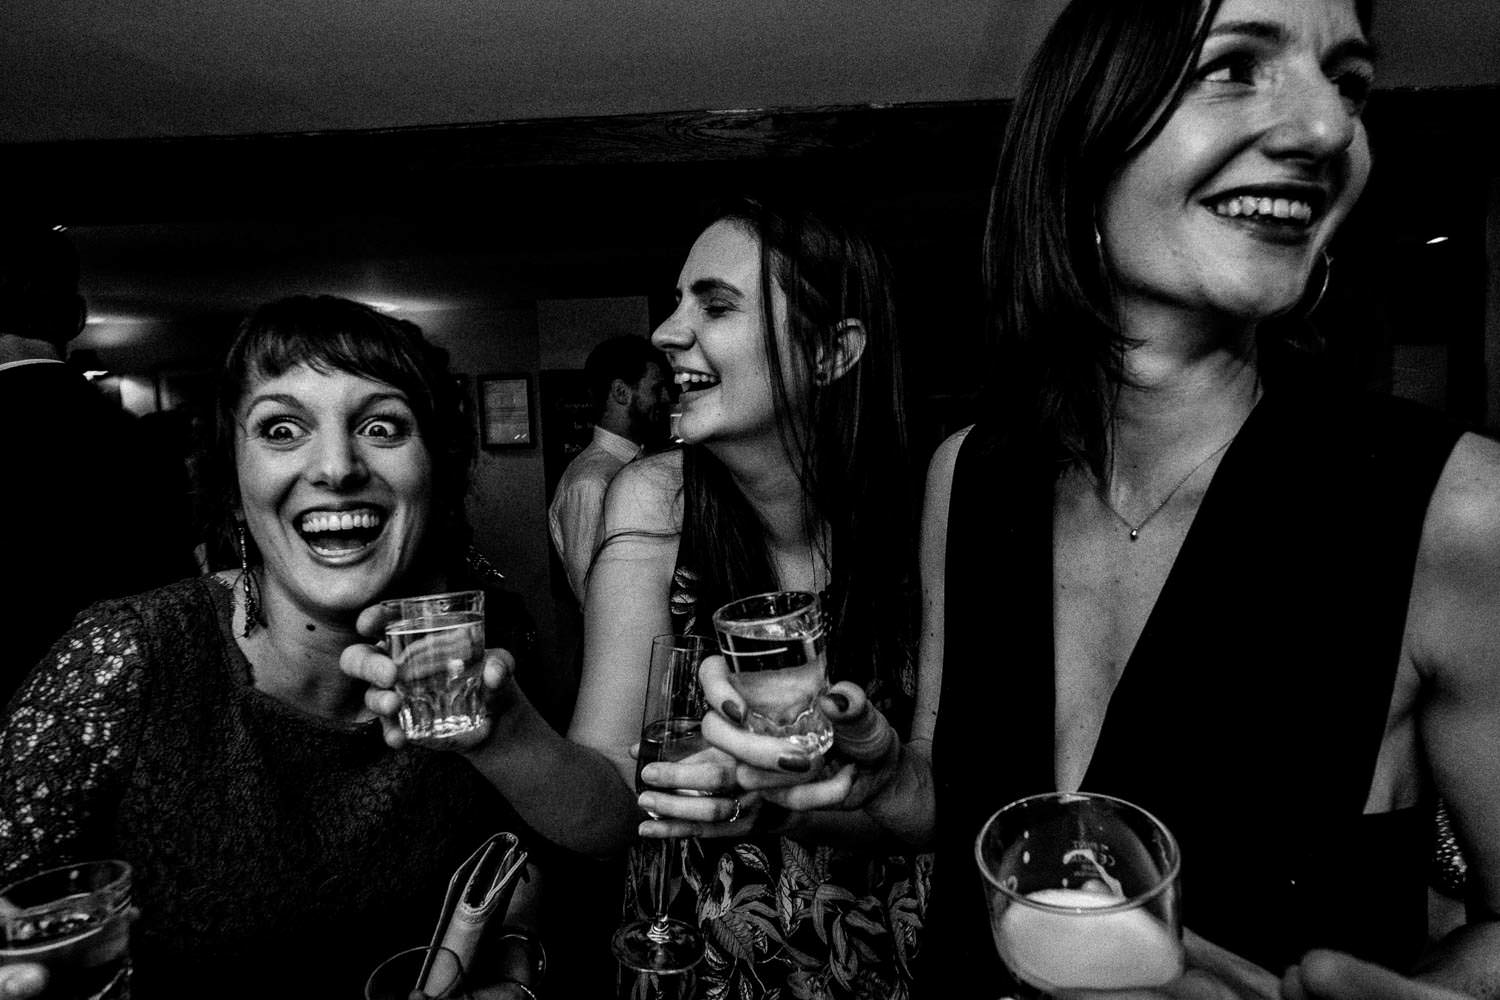 Candid party photography at The Punch Bowl Inn, Lake District